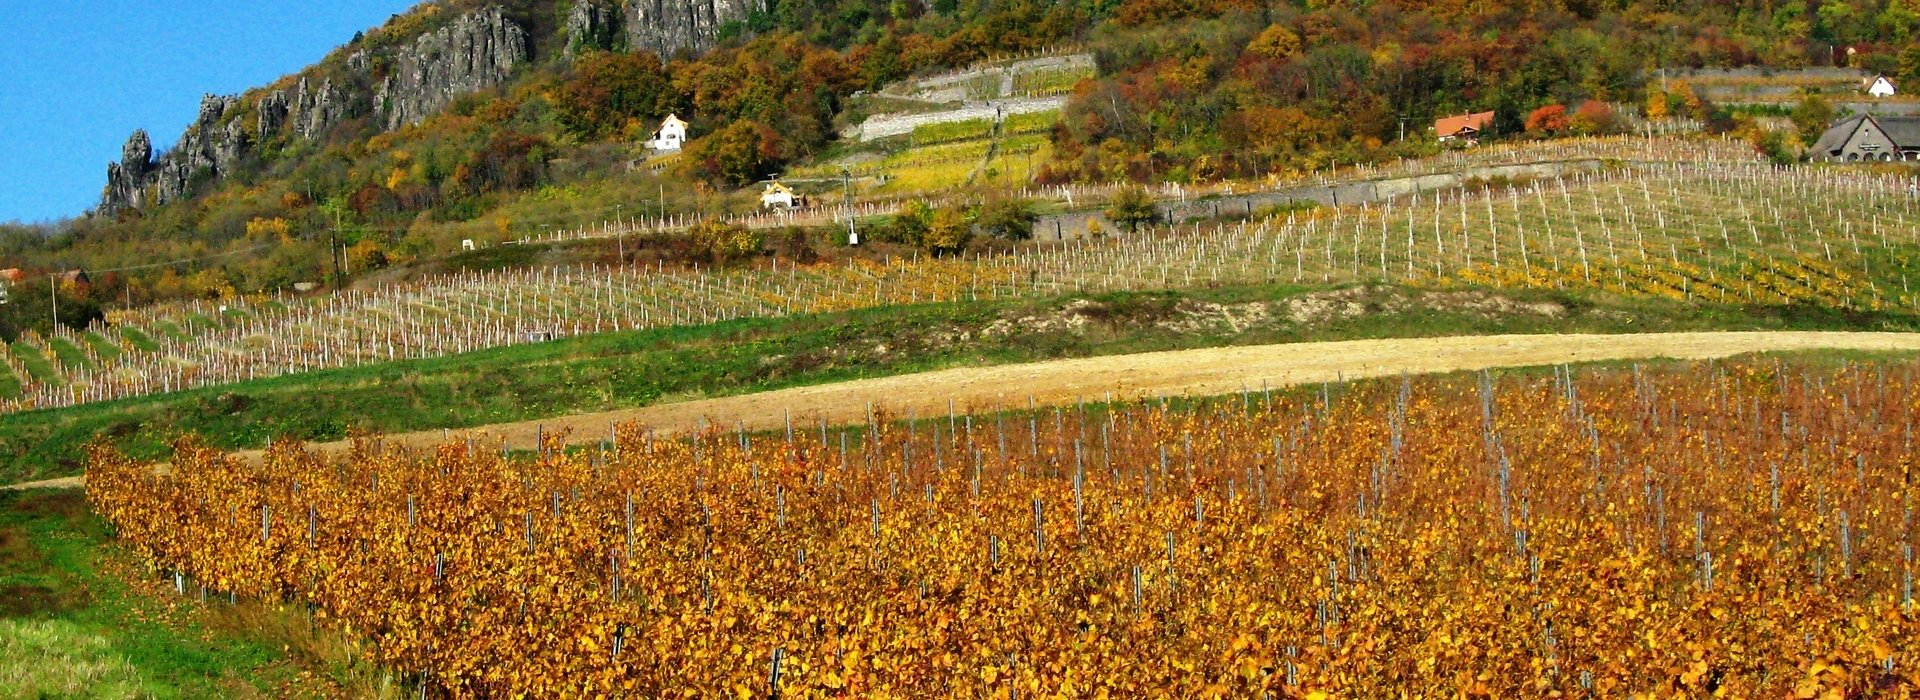 Etyek-Buda Wineregion